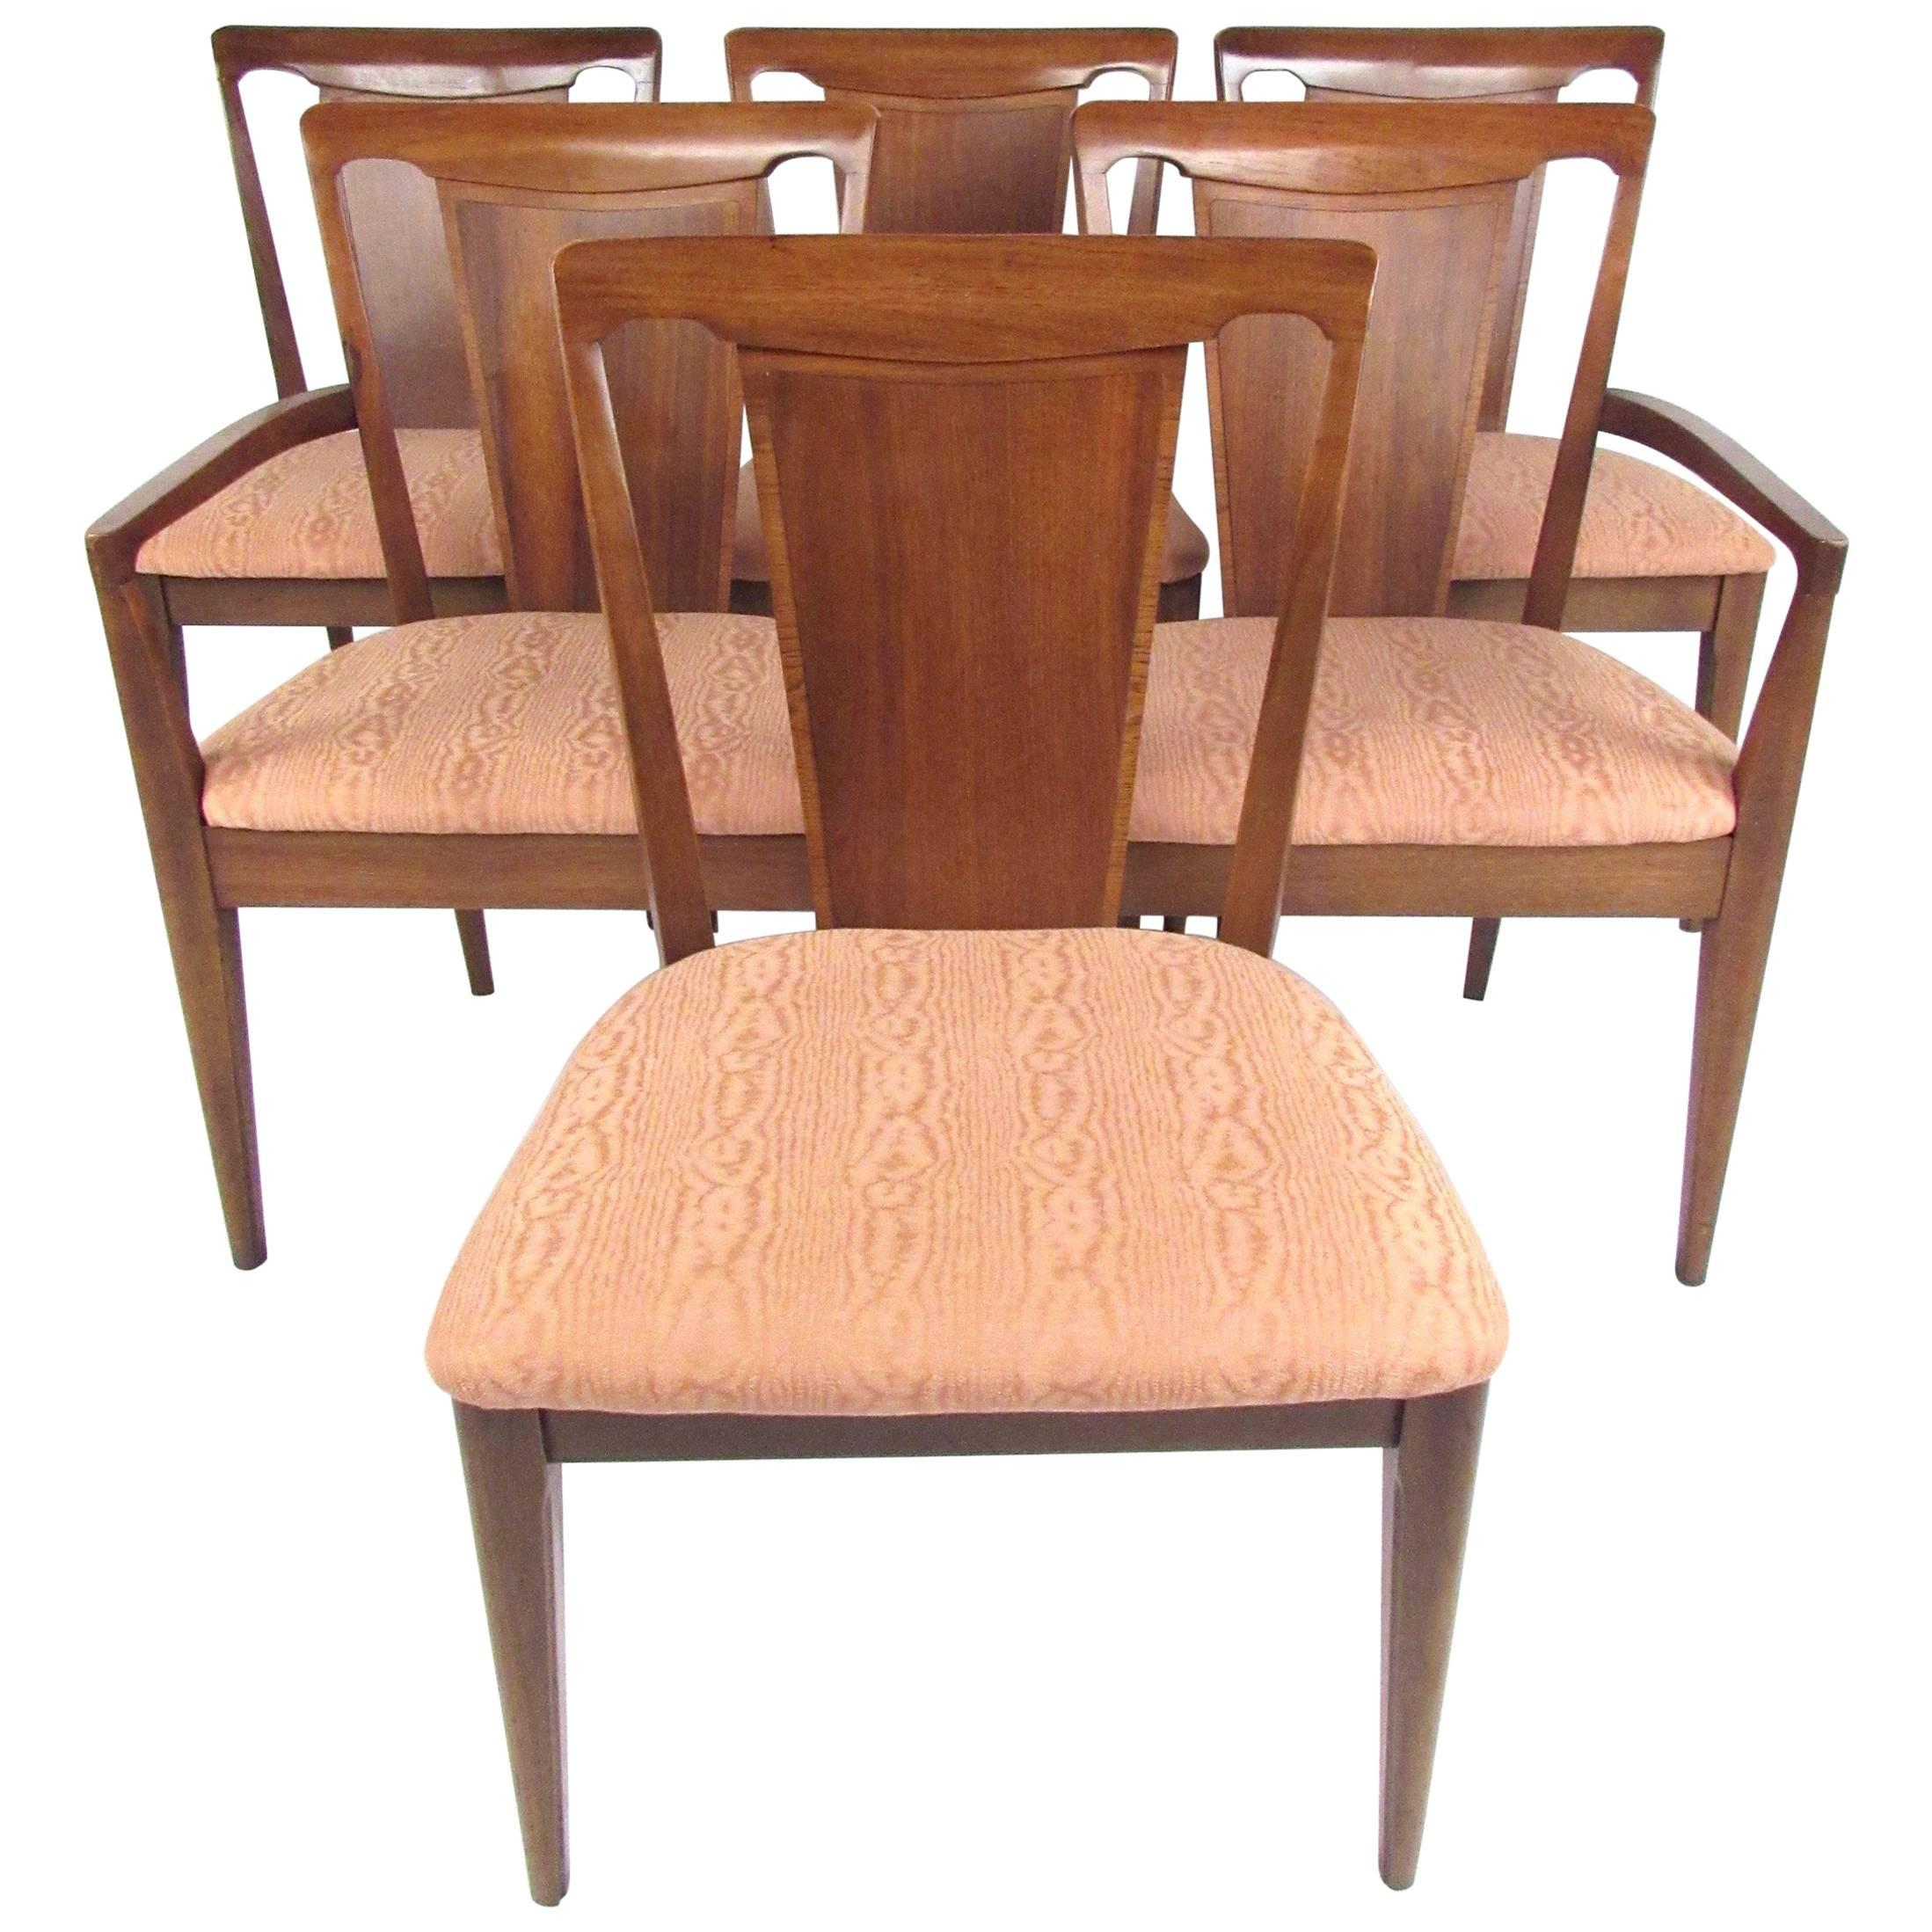 Set of Six Vintage Modern Dining Room Chairs